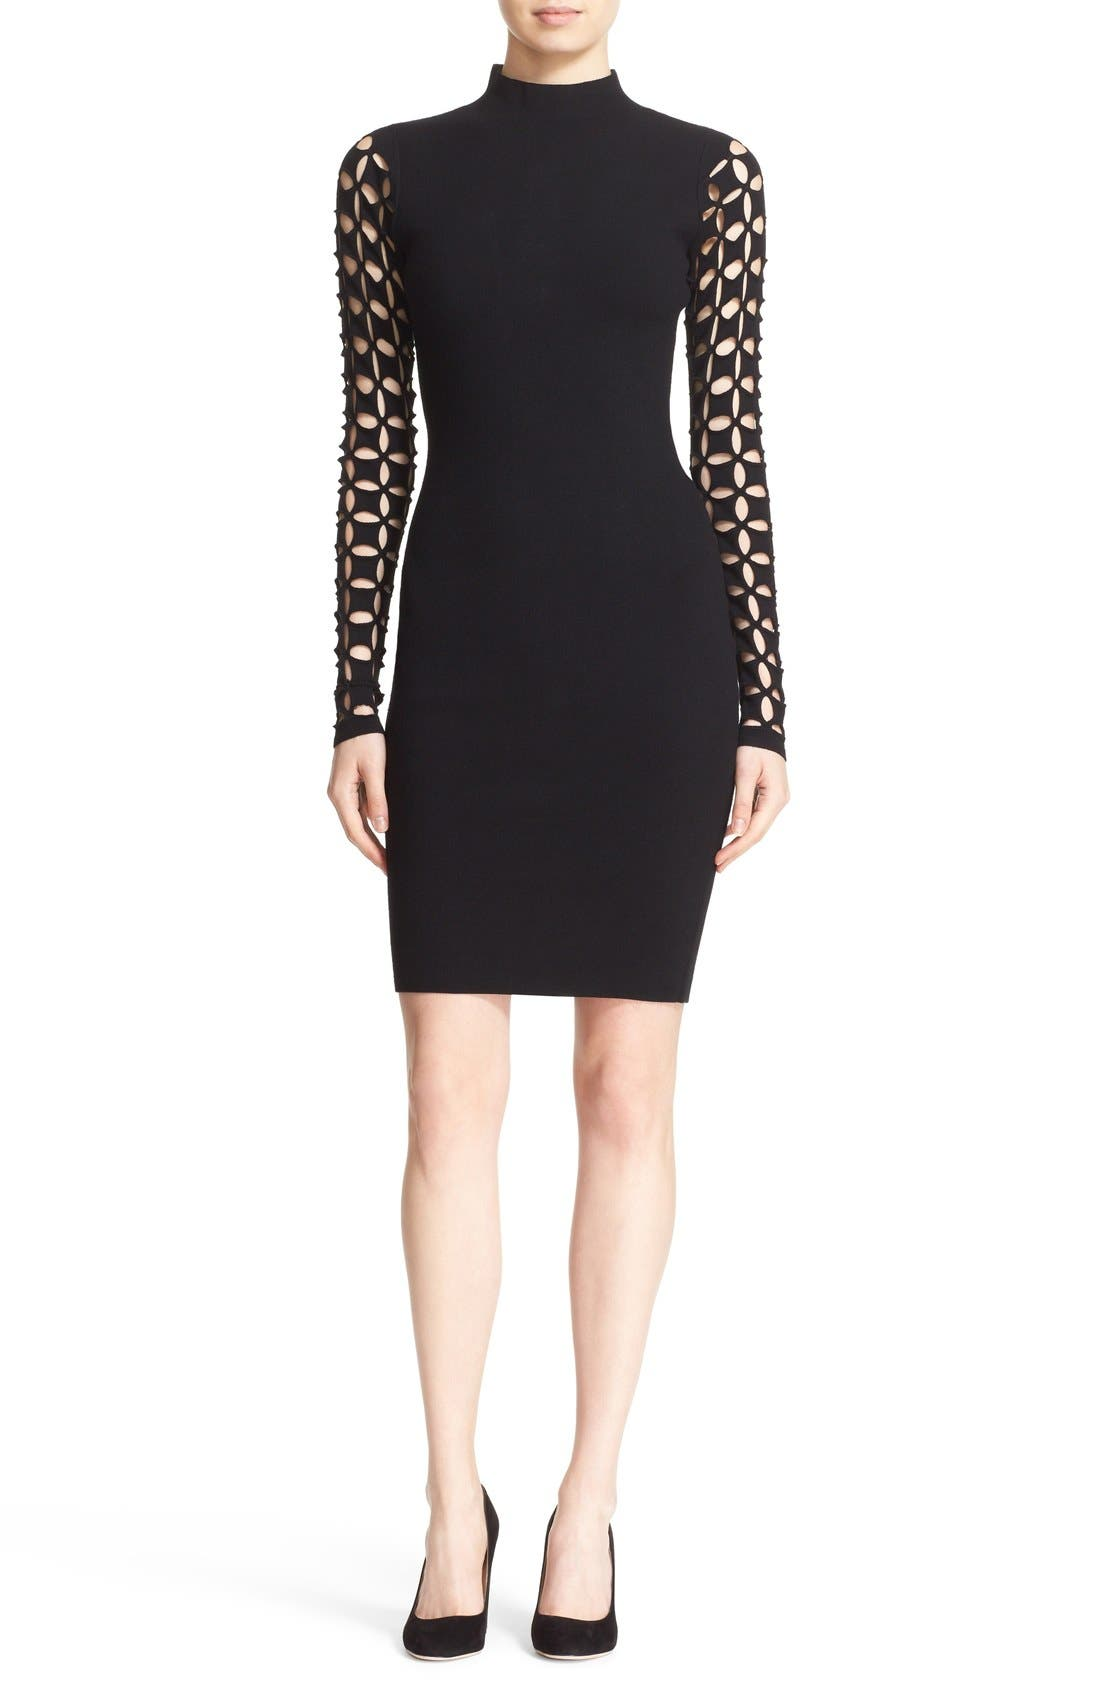 Alternate Image 1 Selected - Milly Lattice Sleeve Fitted Knit Dress